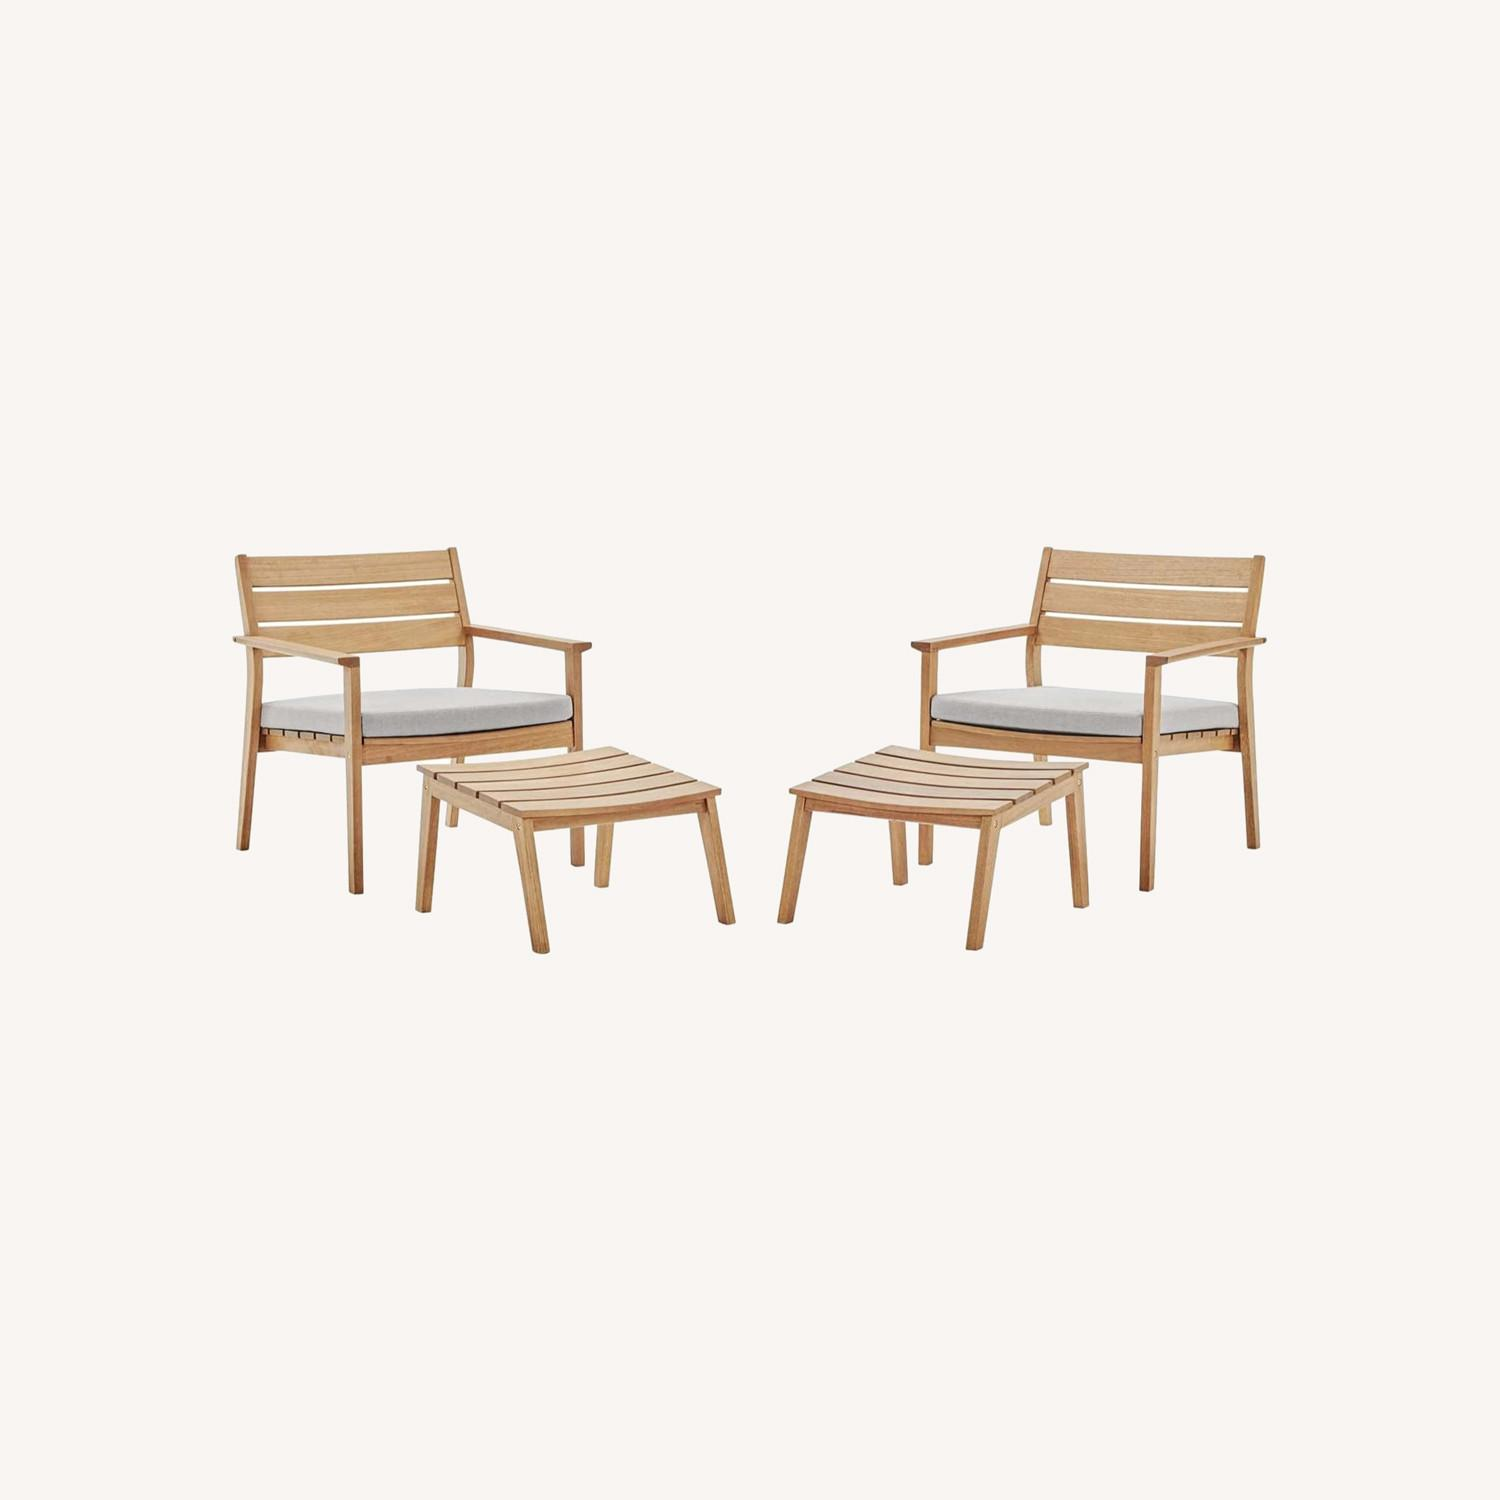 4-Piece Outdoor Patio Set In Natural Taupe Wood - image-10